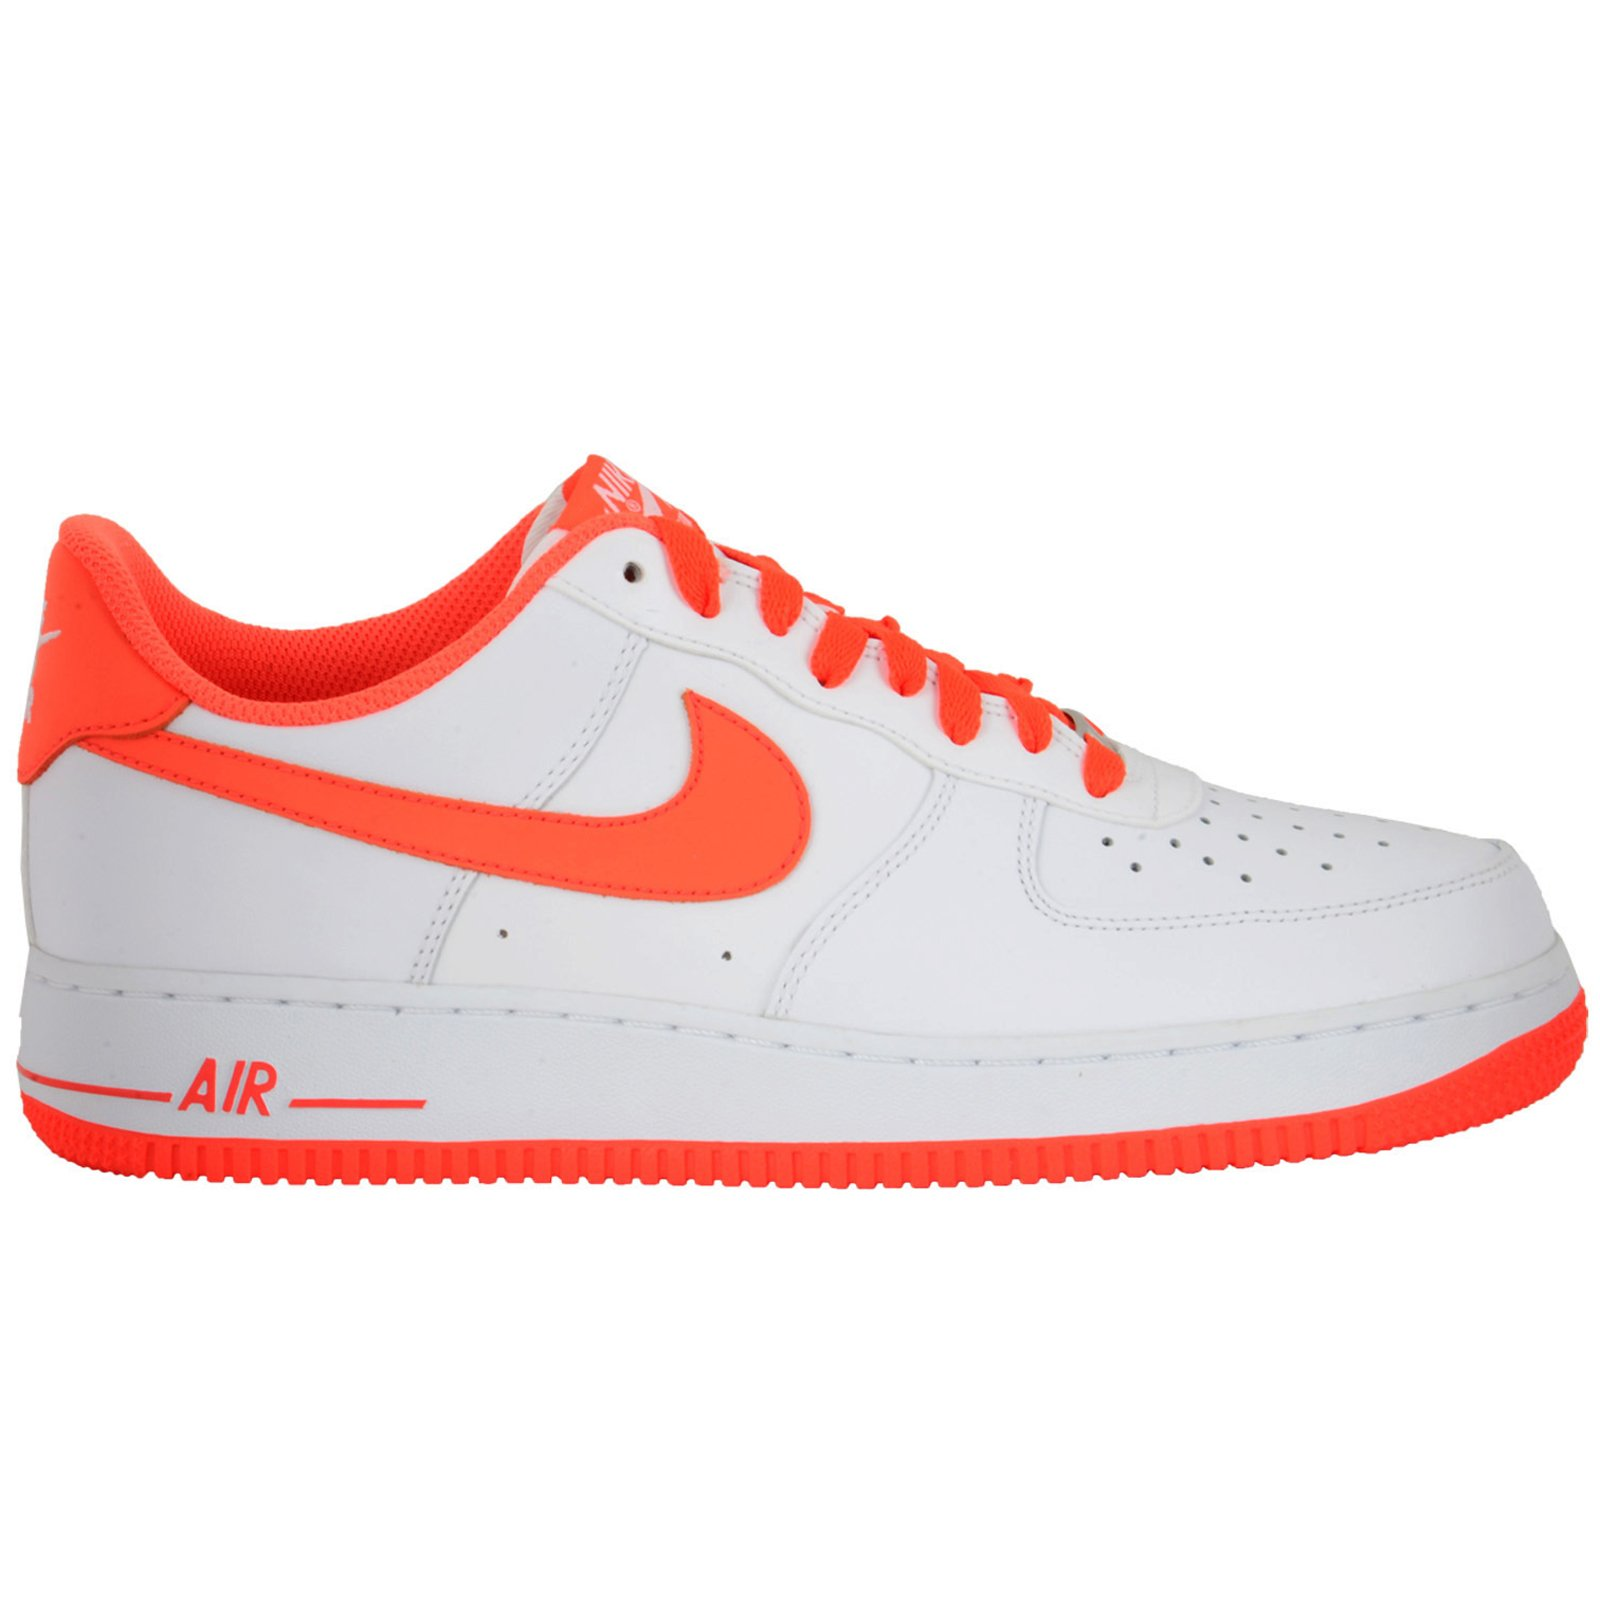 Nike Air Force 1 Mens Basketball Shoes 488298-145 Color: WHITE/TURF ORANGE